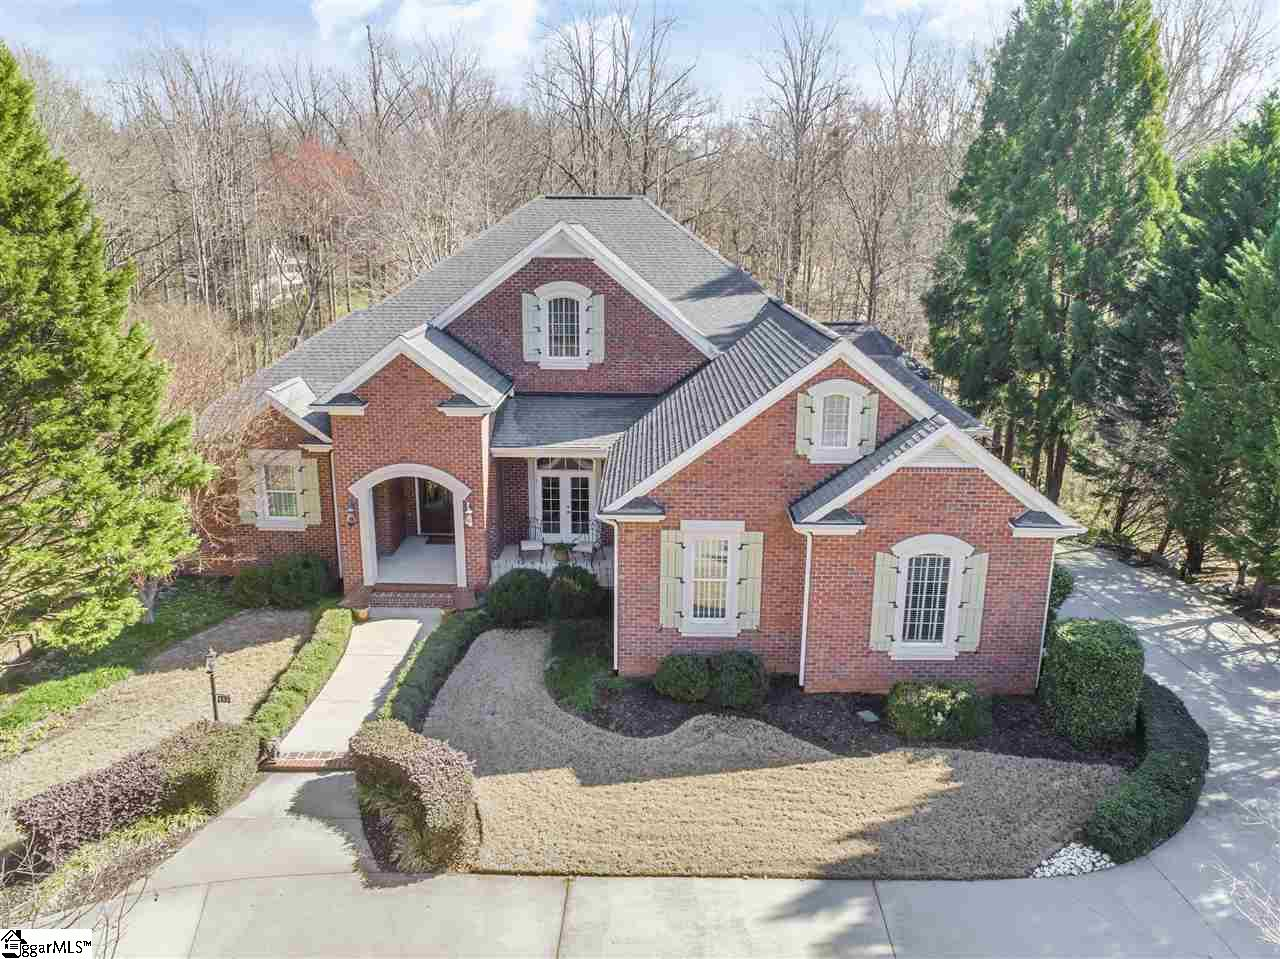 300 Red Maple Way Clemson, SC 29631